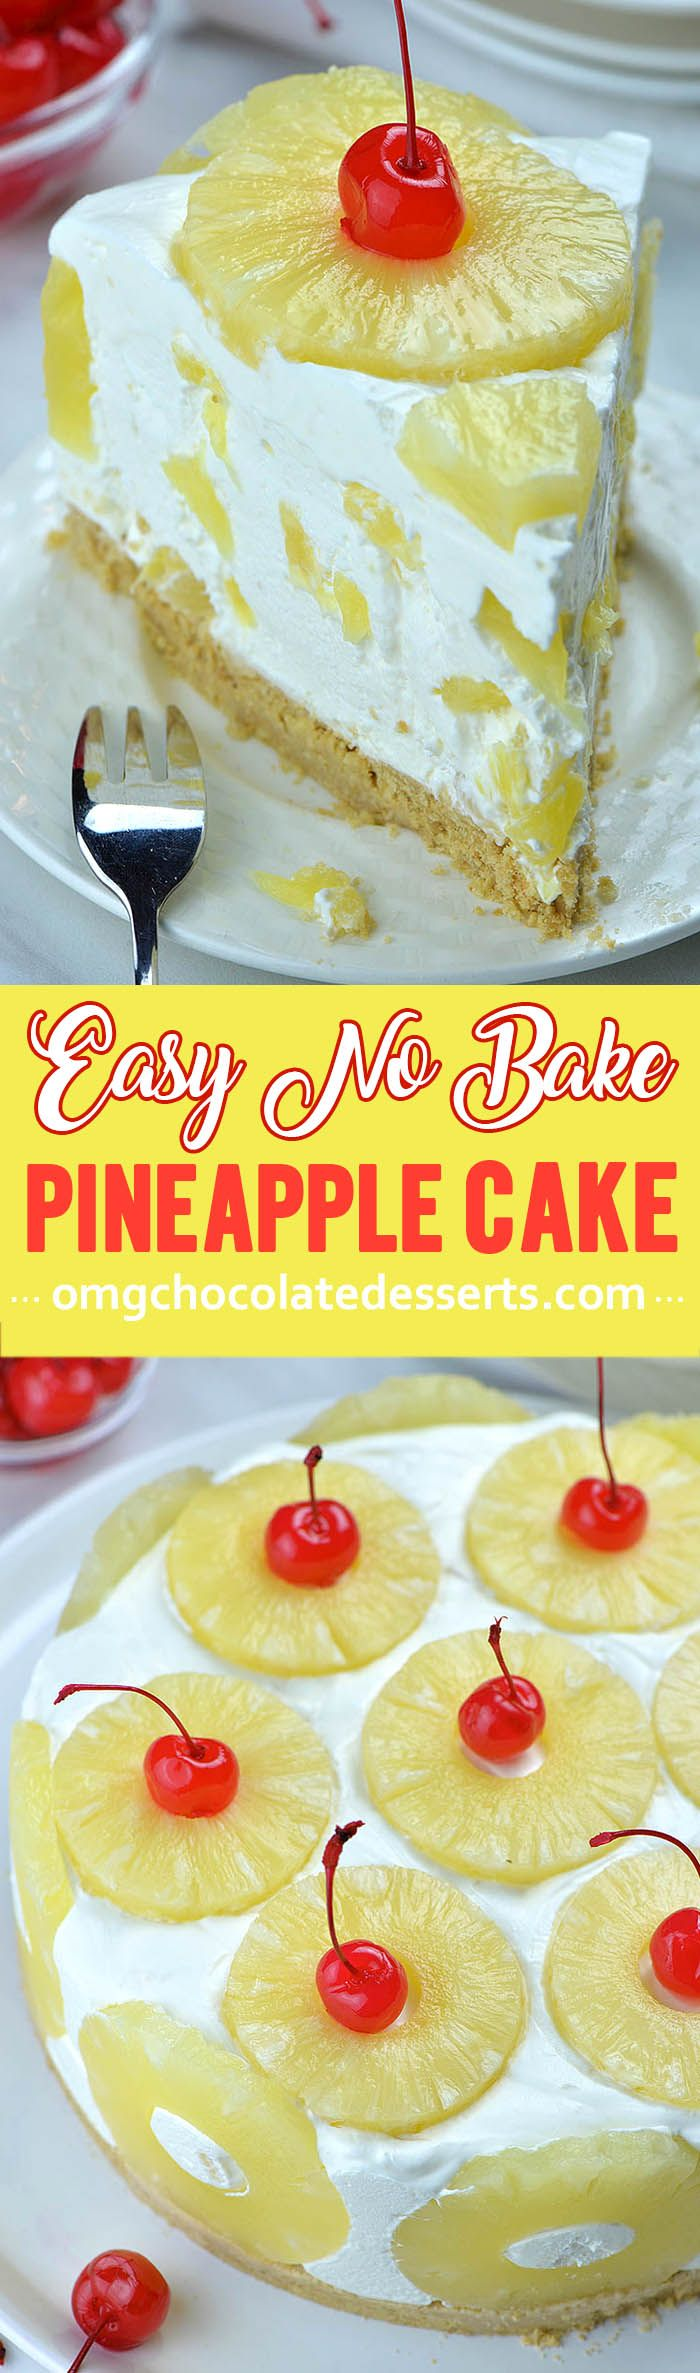 No Bake Pineapple Cake is quick and easy summer dessert recipe. Plus, this quick…